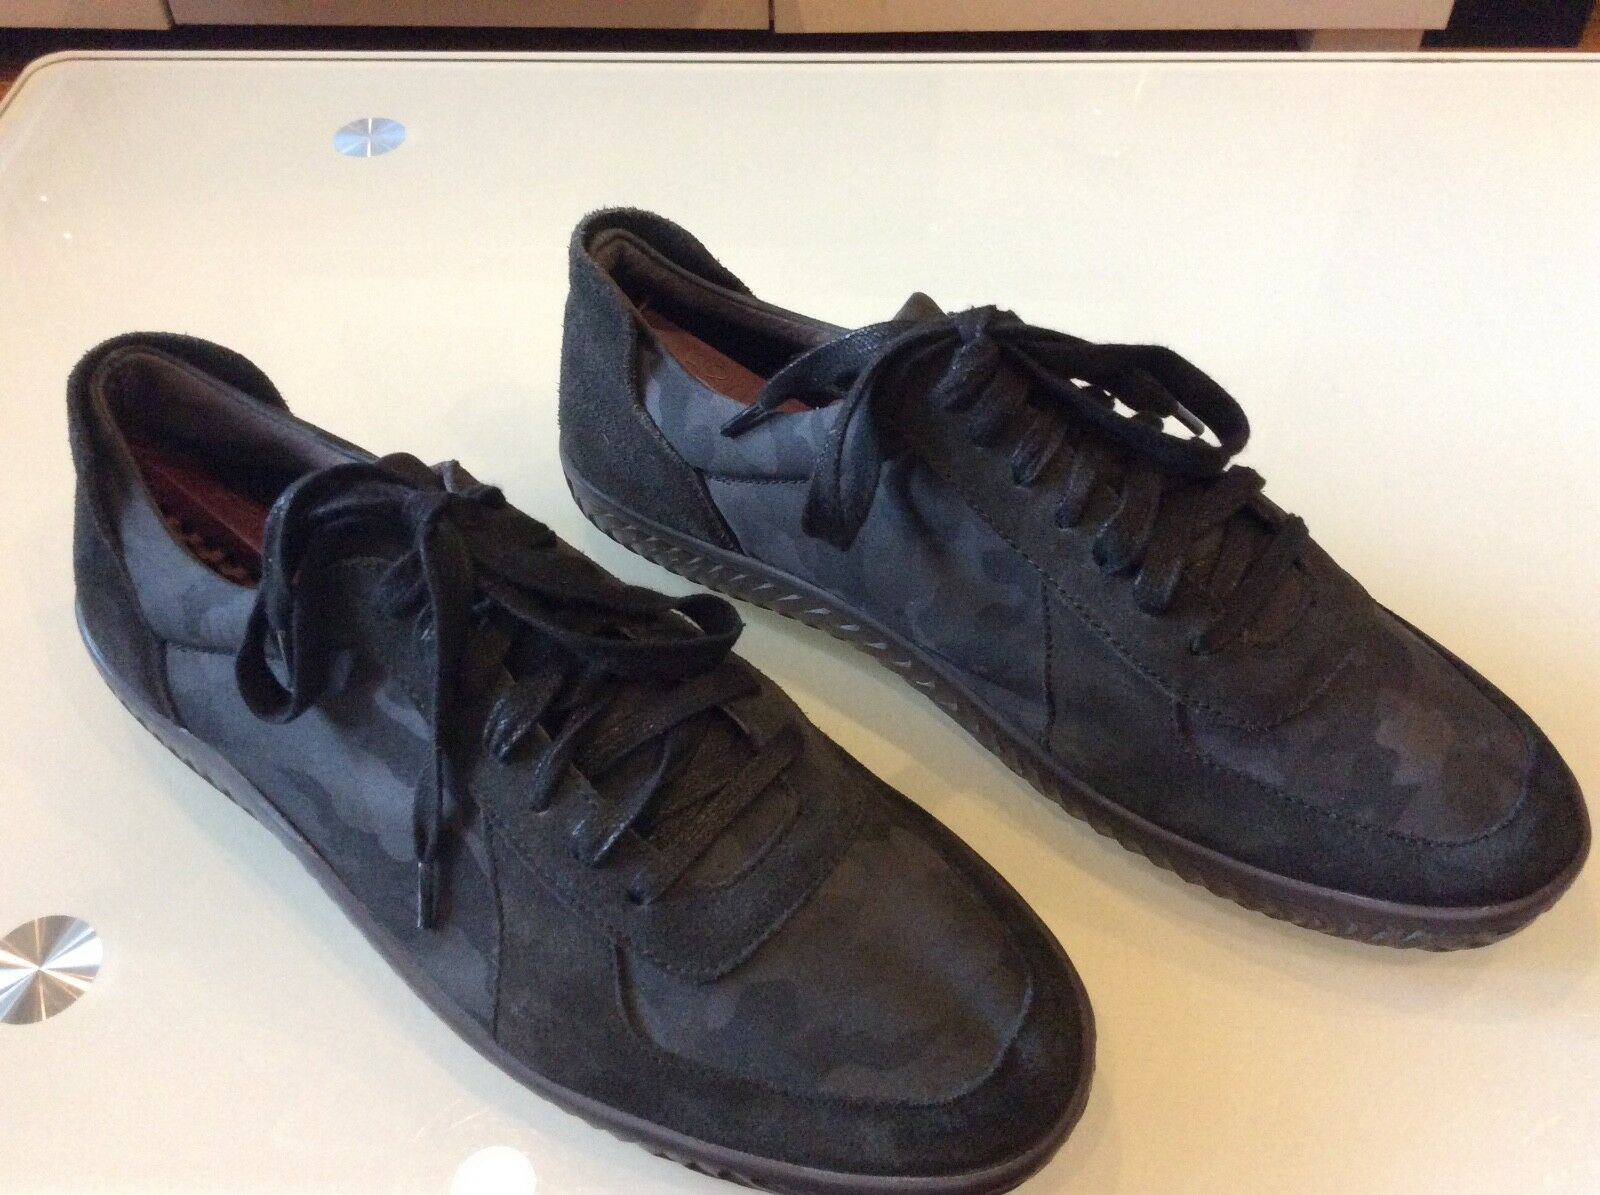 00f647a8d8b6 John Varvatos Men s Black Suede-camouflaged Sneakers Size 10 10 10 64.00  8f5764